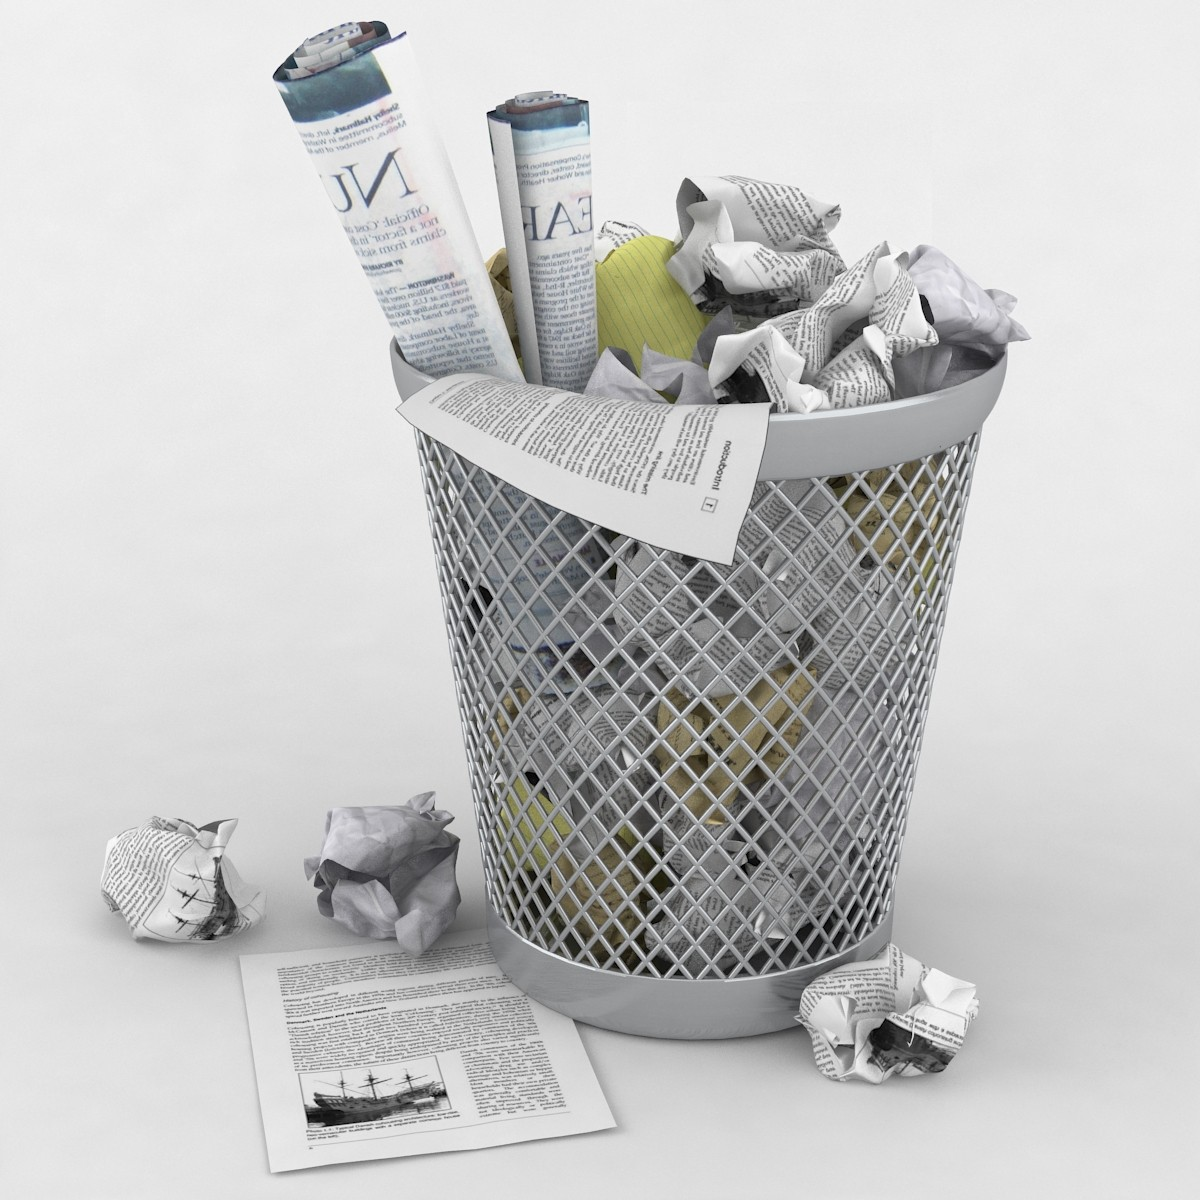 Waste Paper Basket Waste Paper Basket